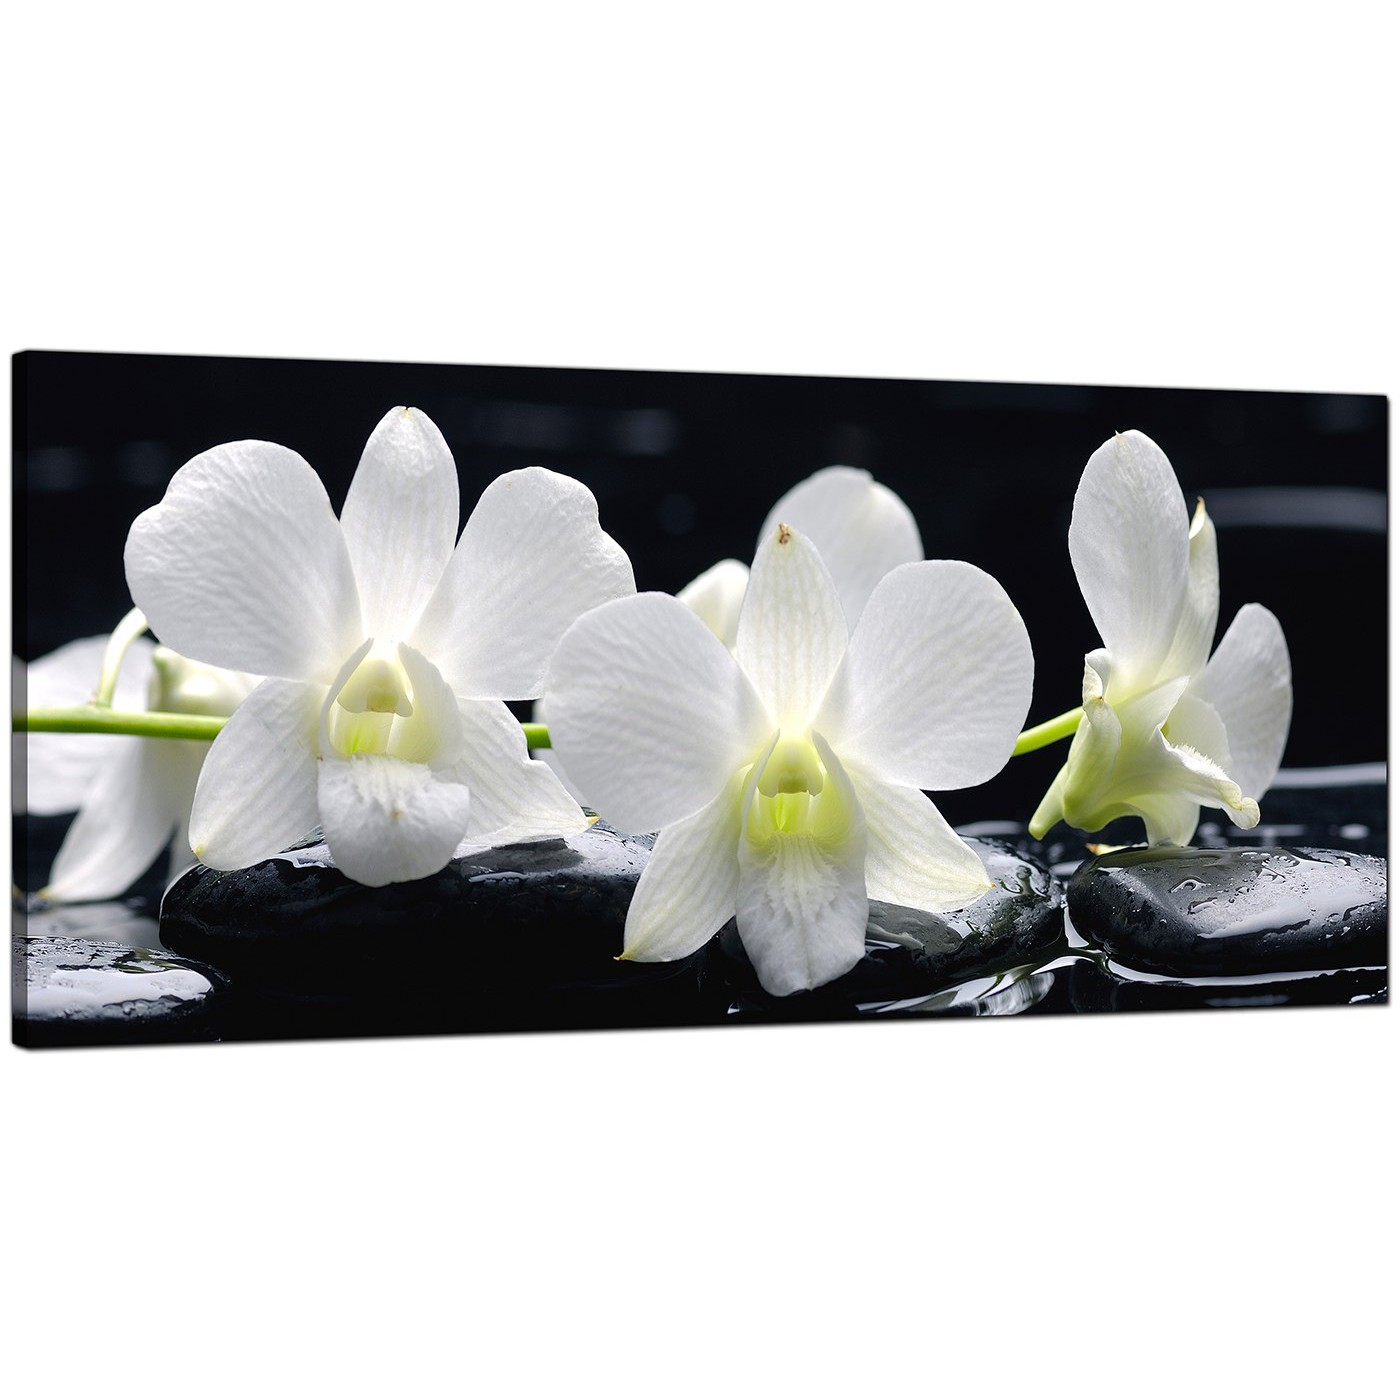 Large Black And White Canvas Prints Of Orchid Flowers